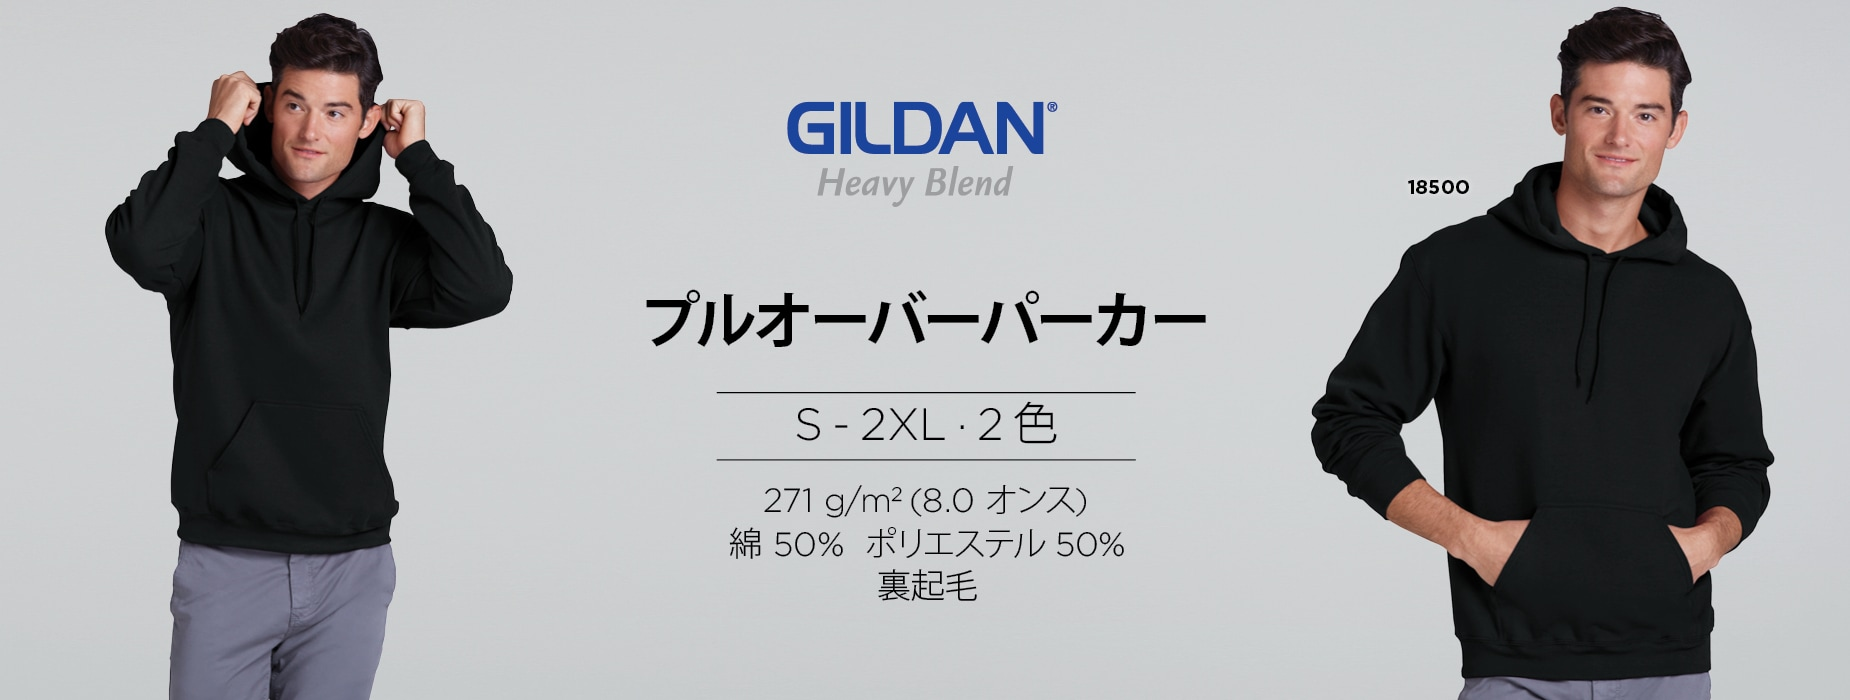 Shop our Gildan® Adult Hooded Sweatshirt | ヘビーブレンド プルオーバーパーカー | Gildan® Brands Japan